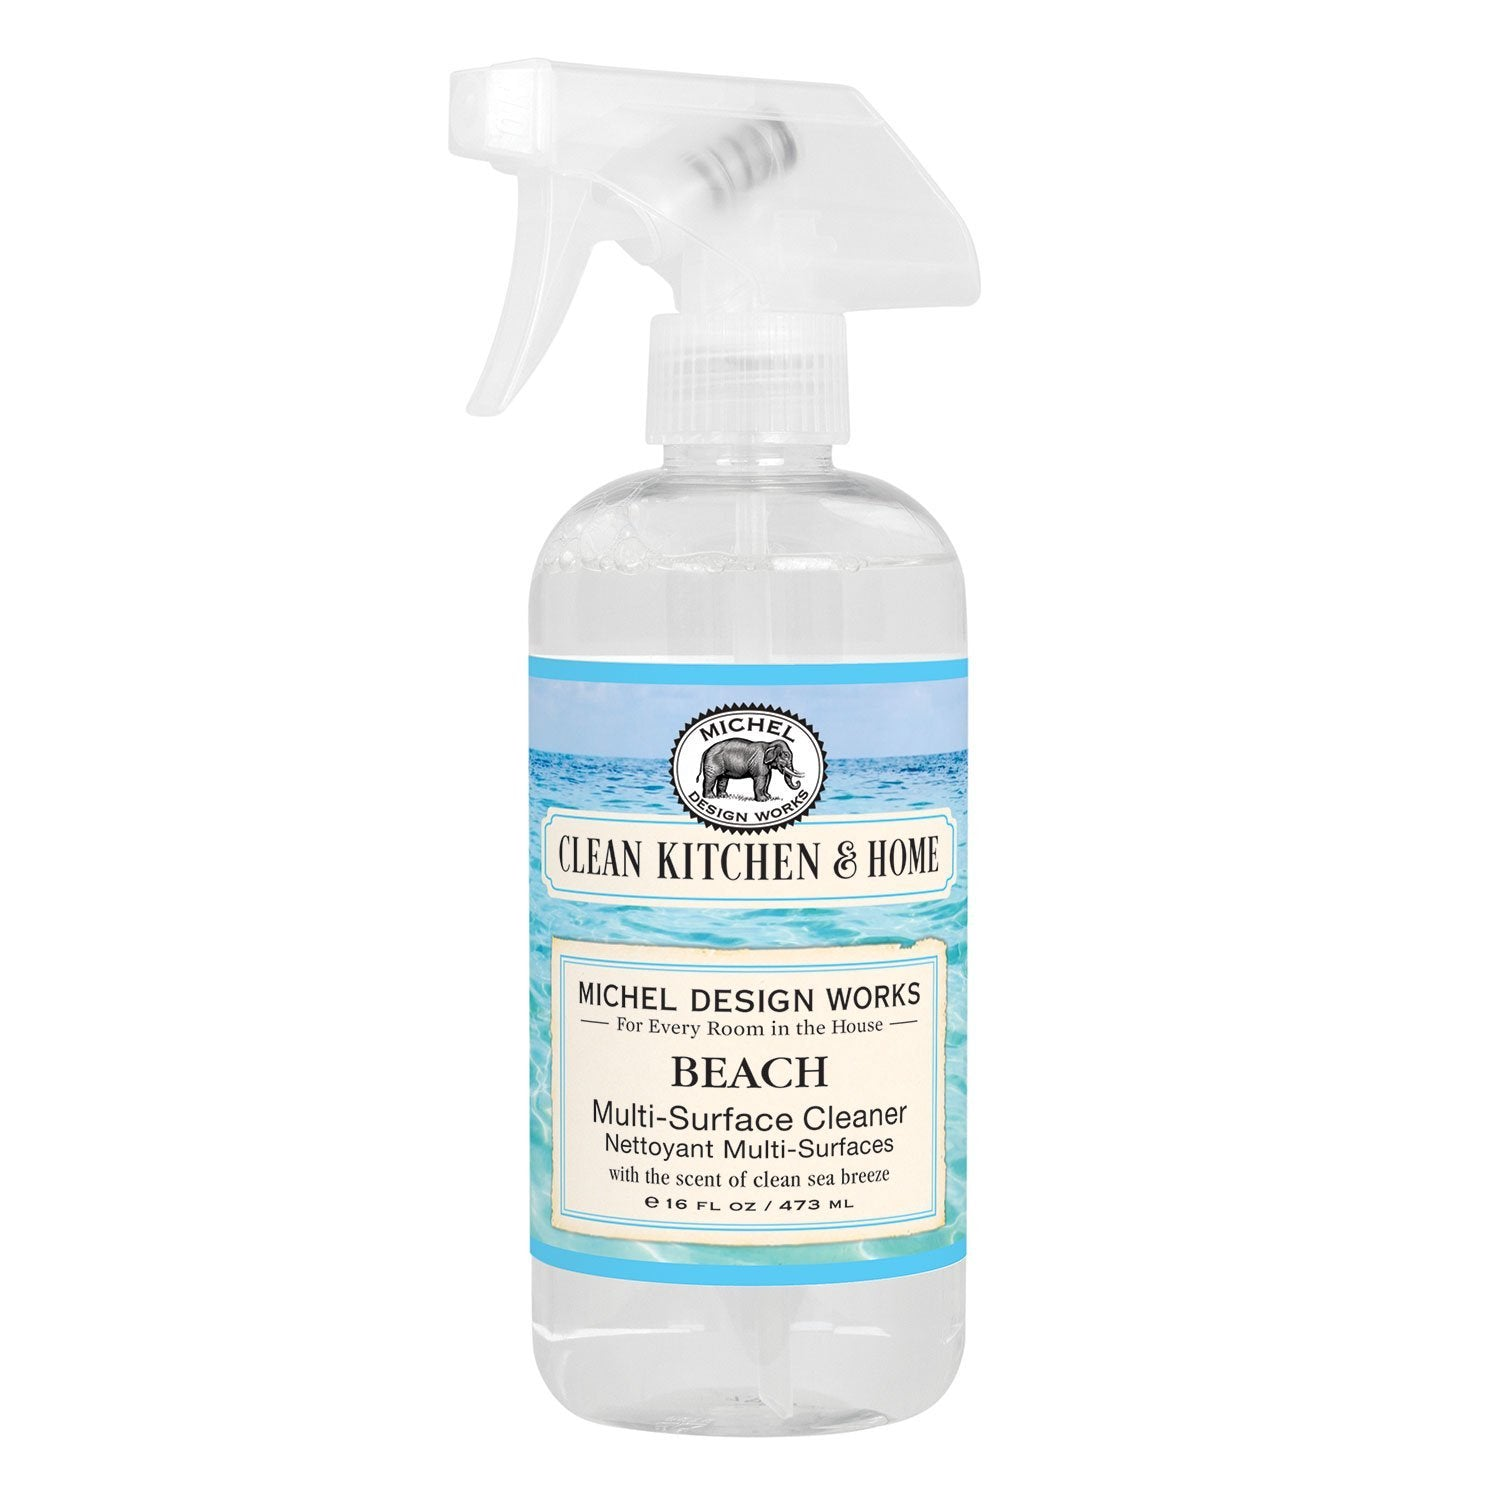 Who wouldn't love the scent of a clean sea breeze in our ever-popular Beach? Now it's here in a spray-on cleaner you can't do without! It removes grease, grime, and dirt from a wide variety of water-safe surfaces, and leaves a lovely fragrance behind.  16 fl. oz. / 473 ml Fragrance: Compelling marine notes with hints of bergamot, amber and watermelon.